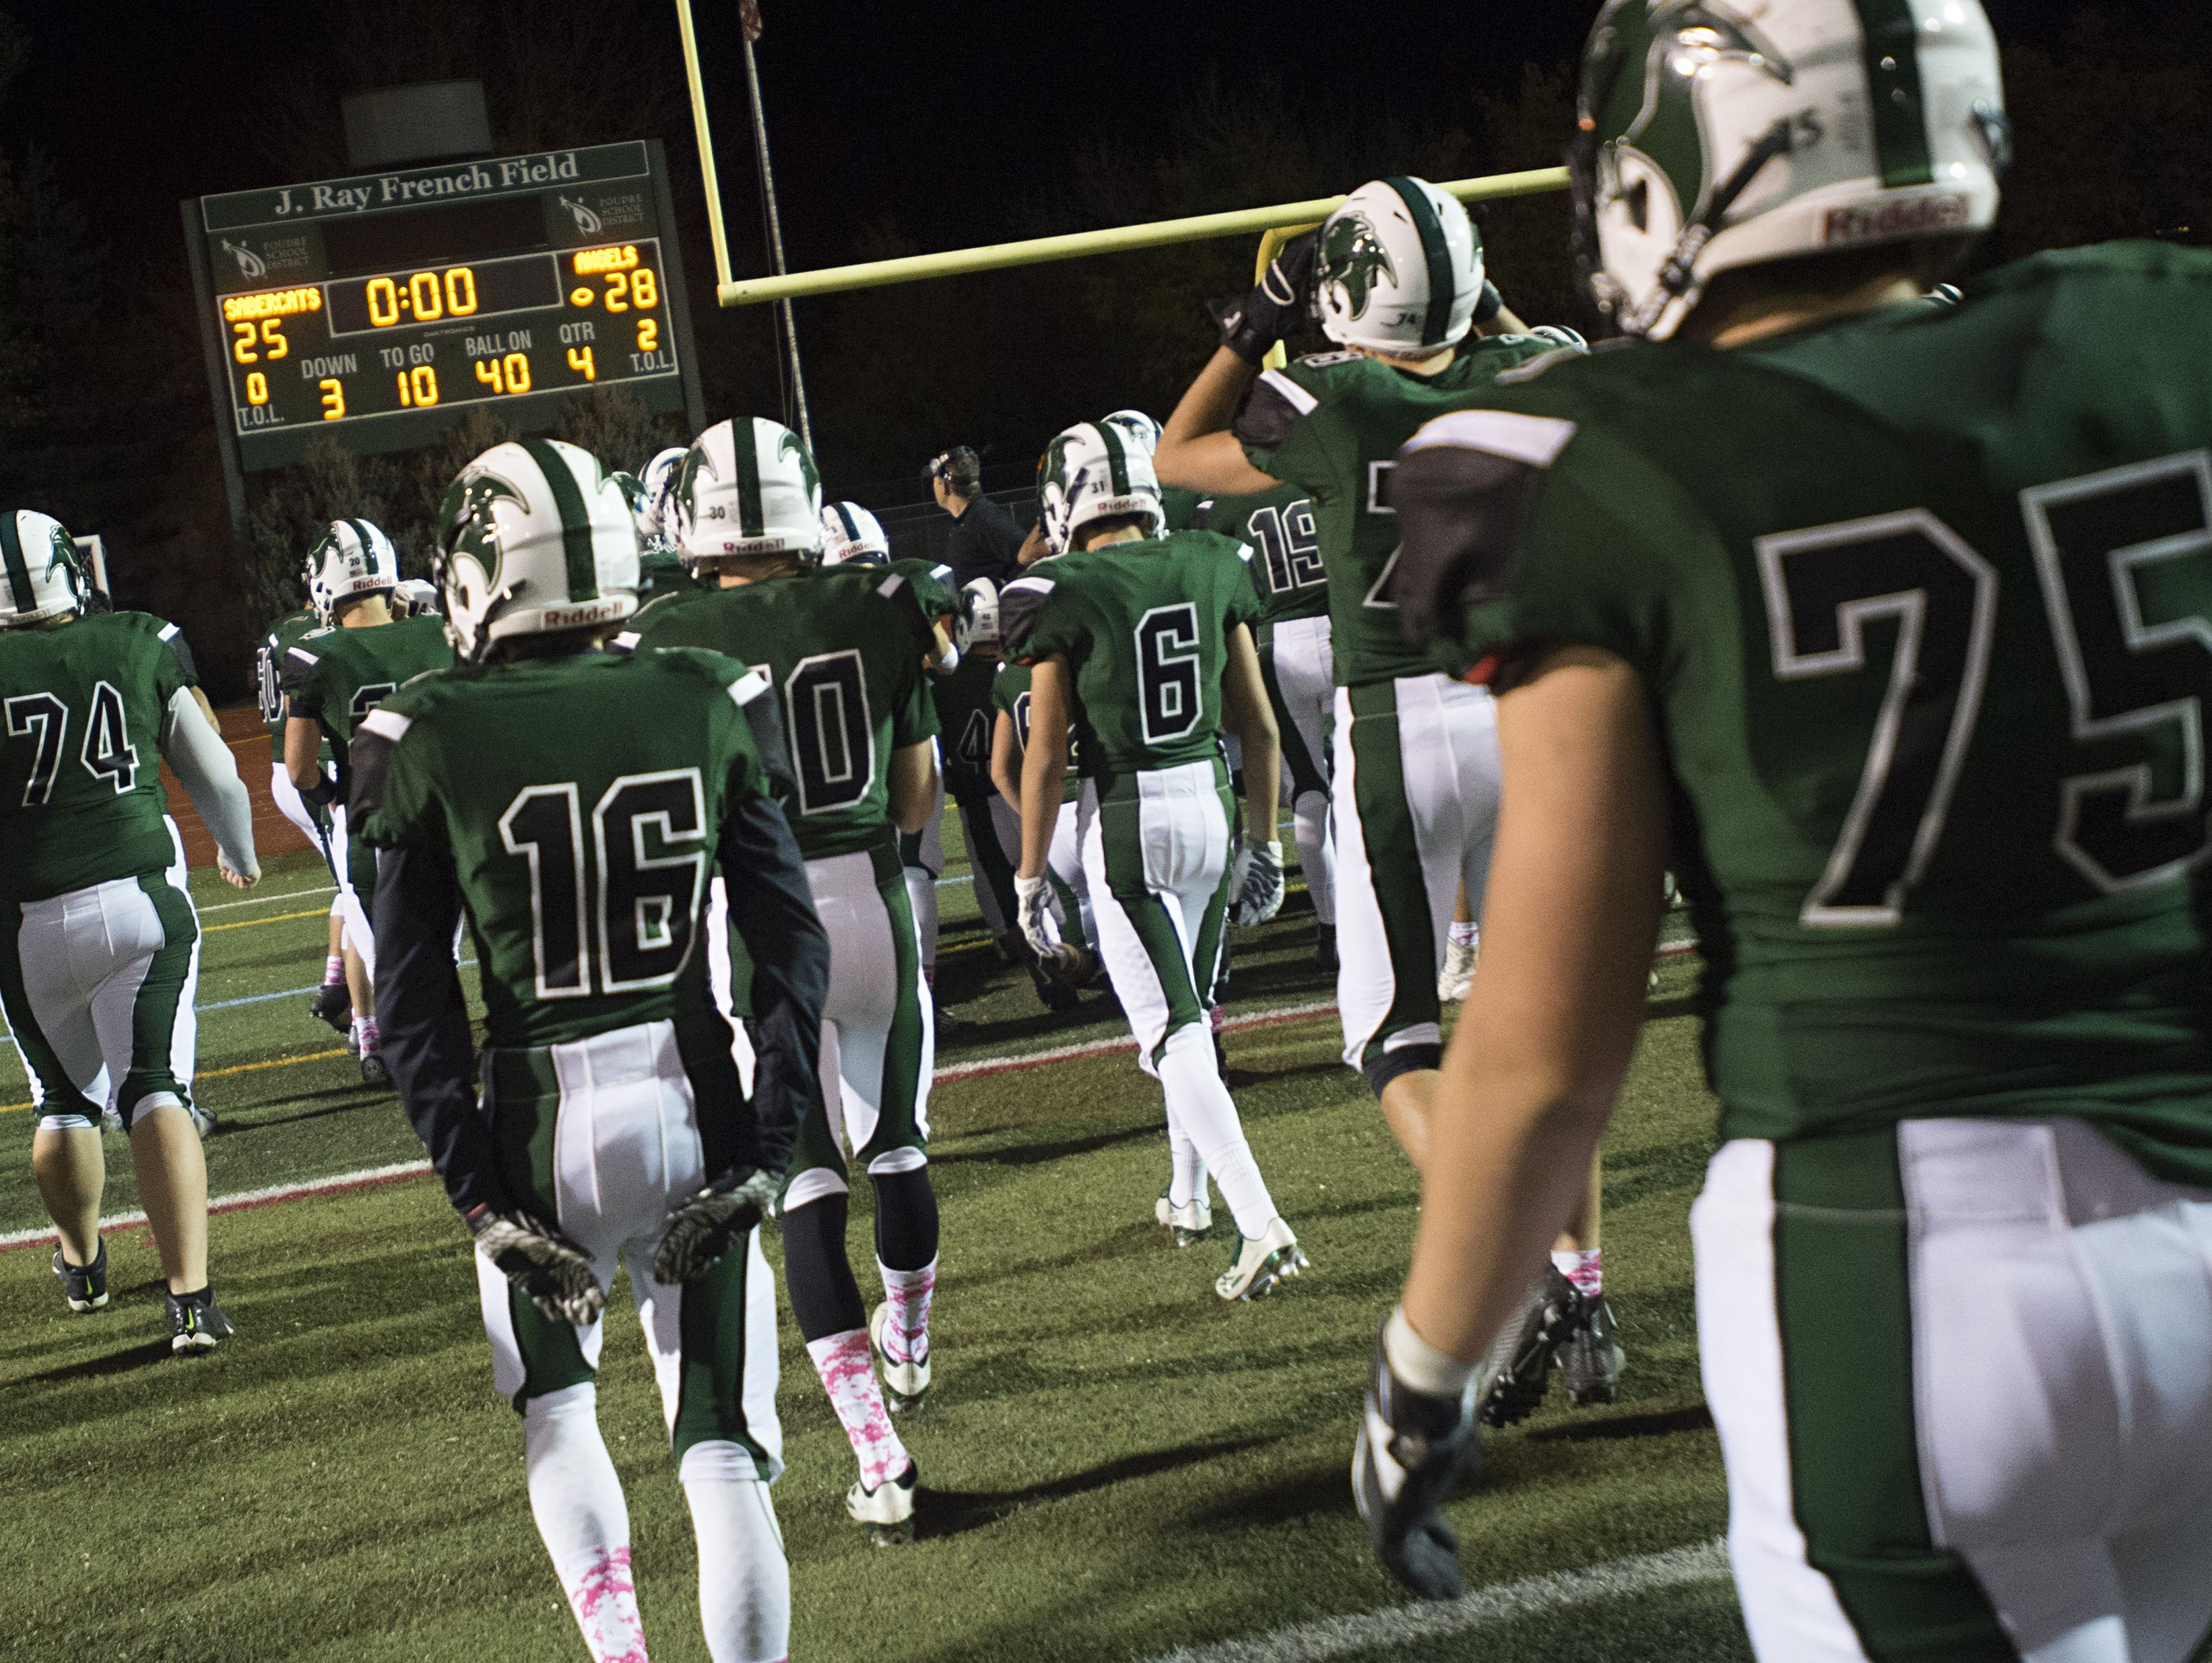 The Fossil Ridge High School football team leaves the field following a 28-25 loss to Denver East at French Field on October 21, 2016. Despite going 7-3 this season, the SaberCats missed the Class 5A playoffs.